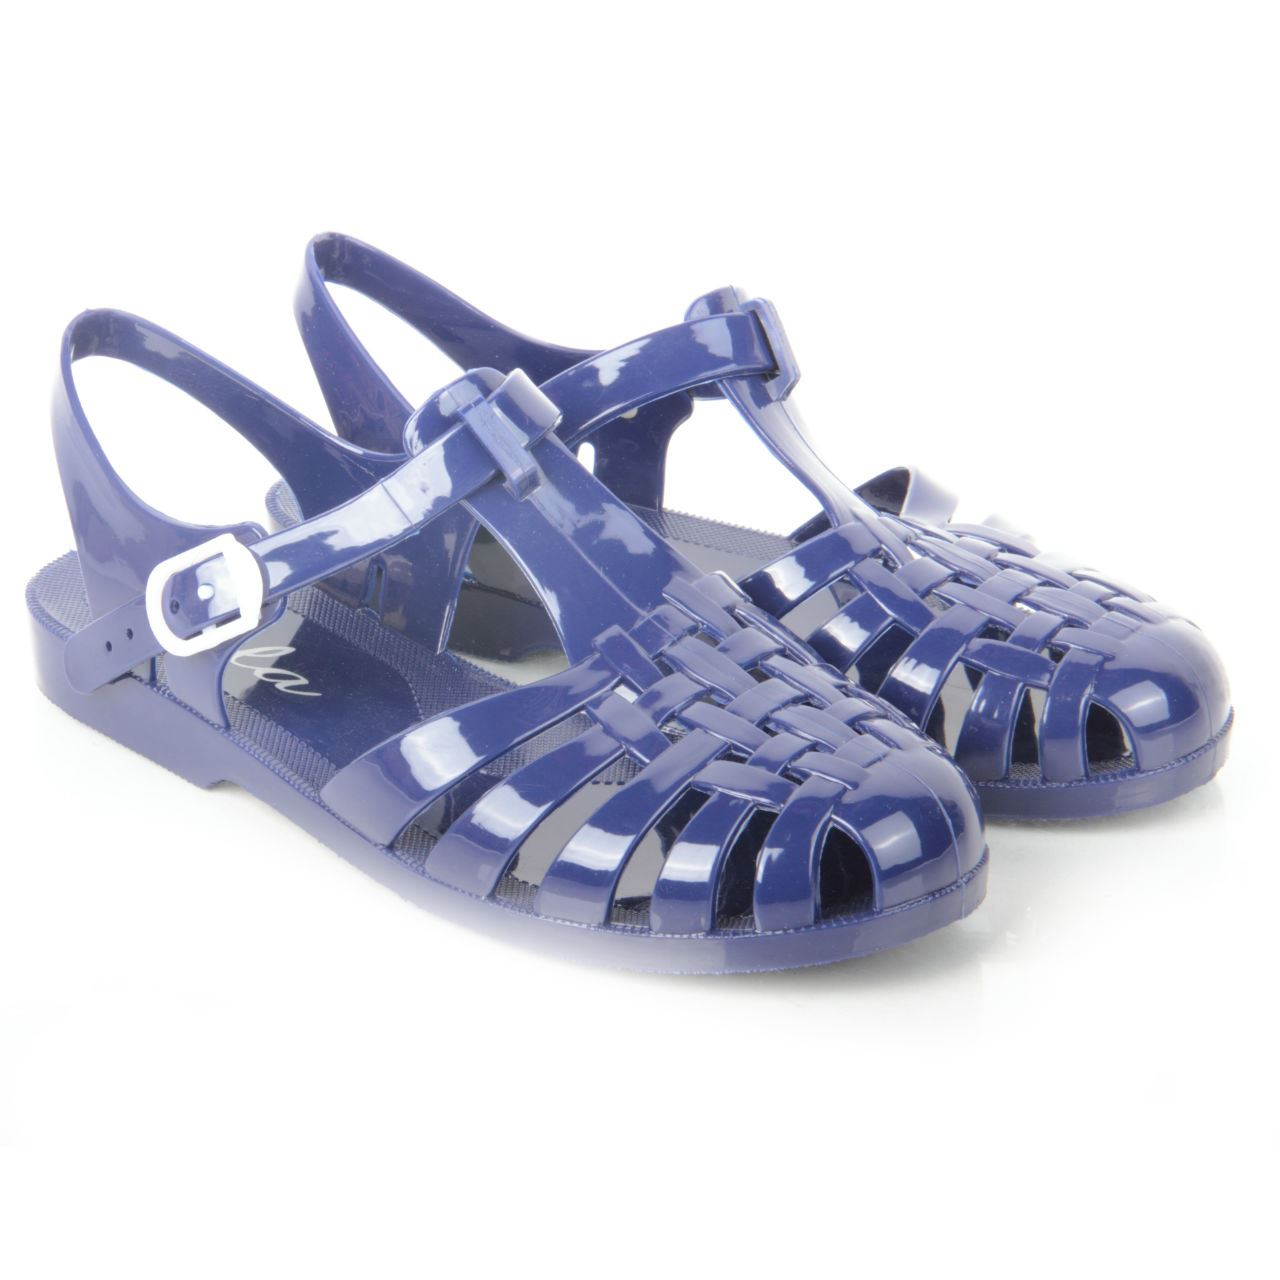 Jelly Beans Sandals Sale! Shop metrdisk.cf's huge selection of Jelly Beans Sandals and save big! Over 20 styles available. FREE Shipping & Exchanges, and a % price guarantee!